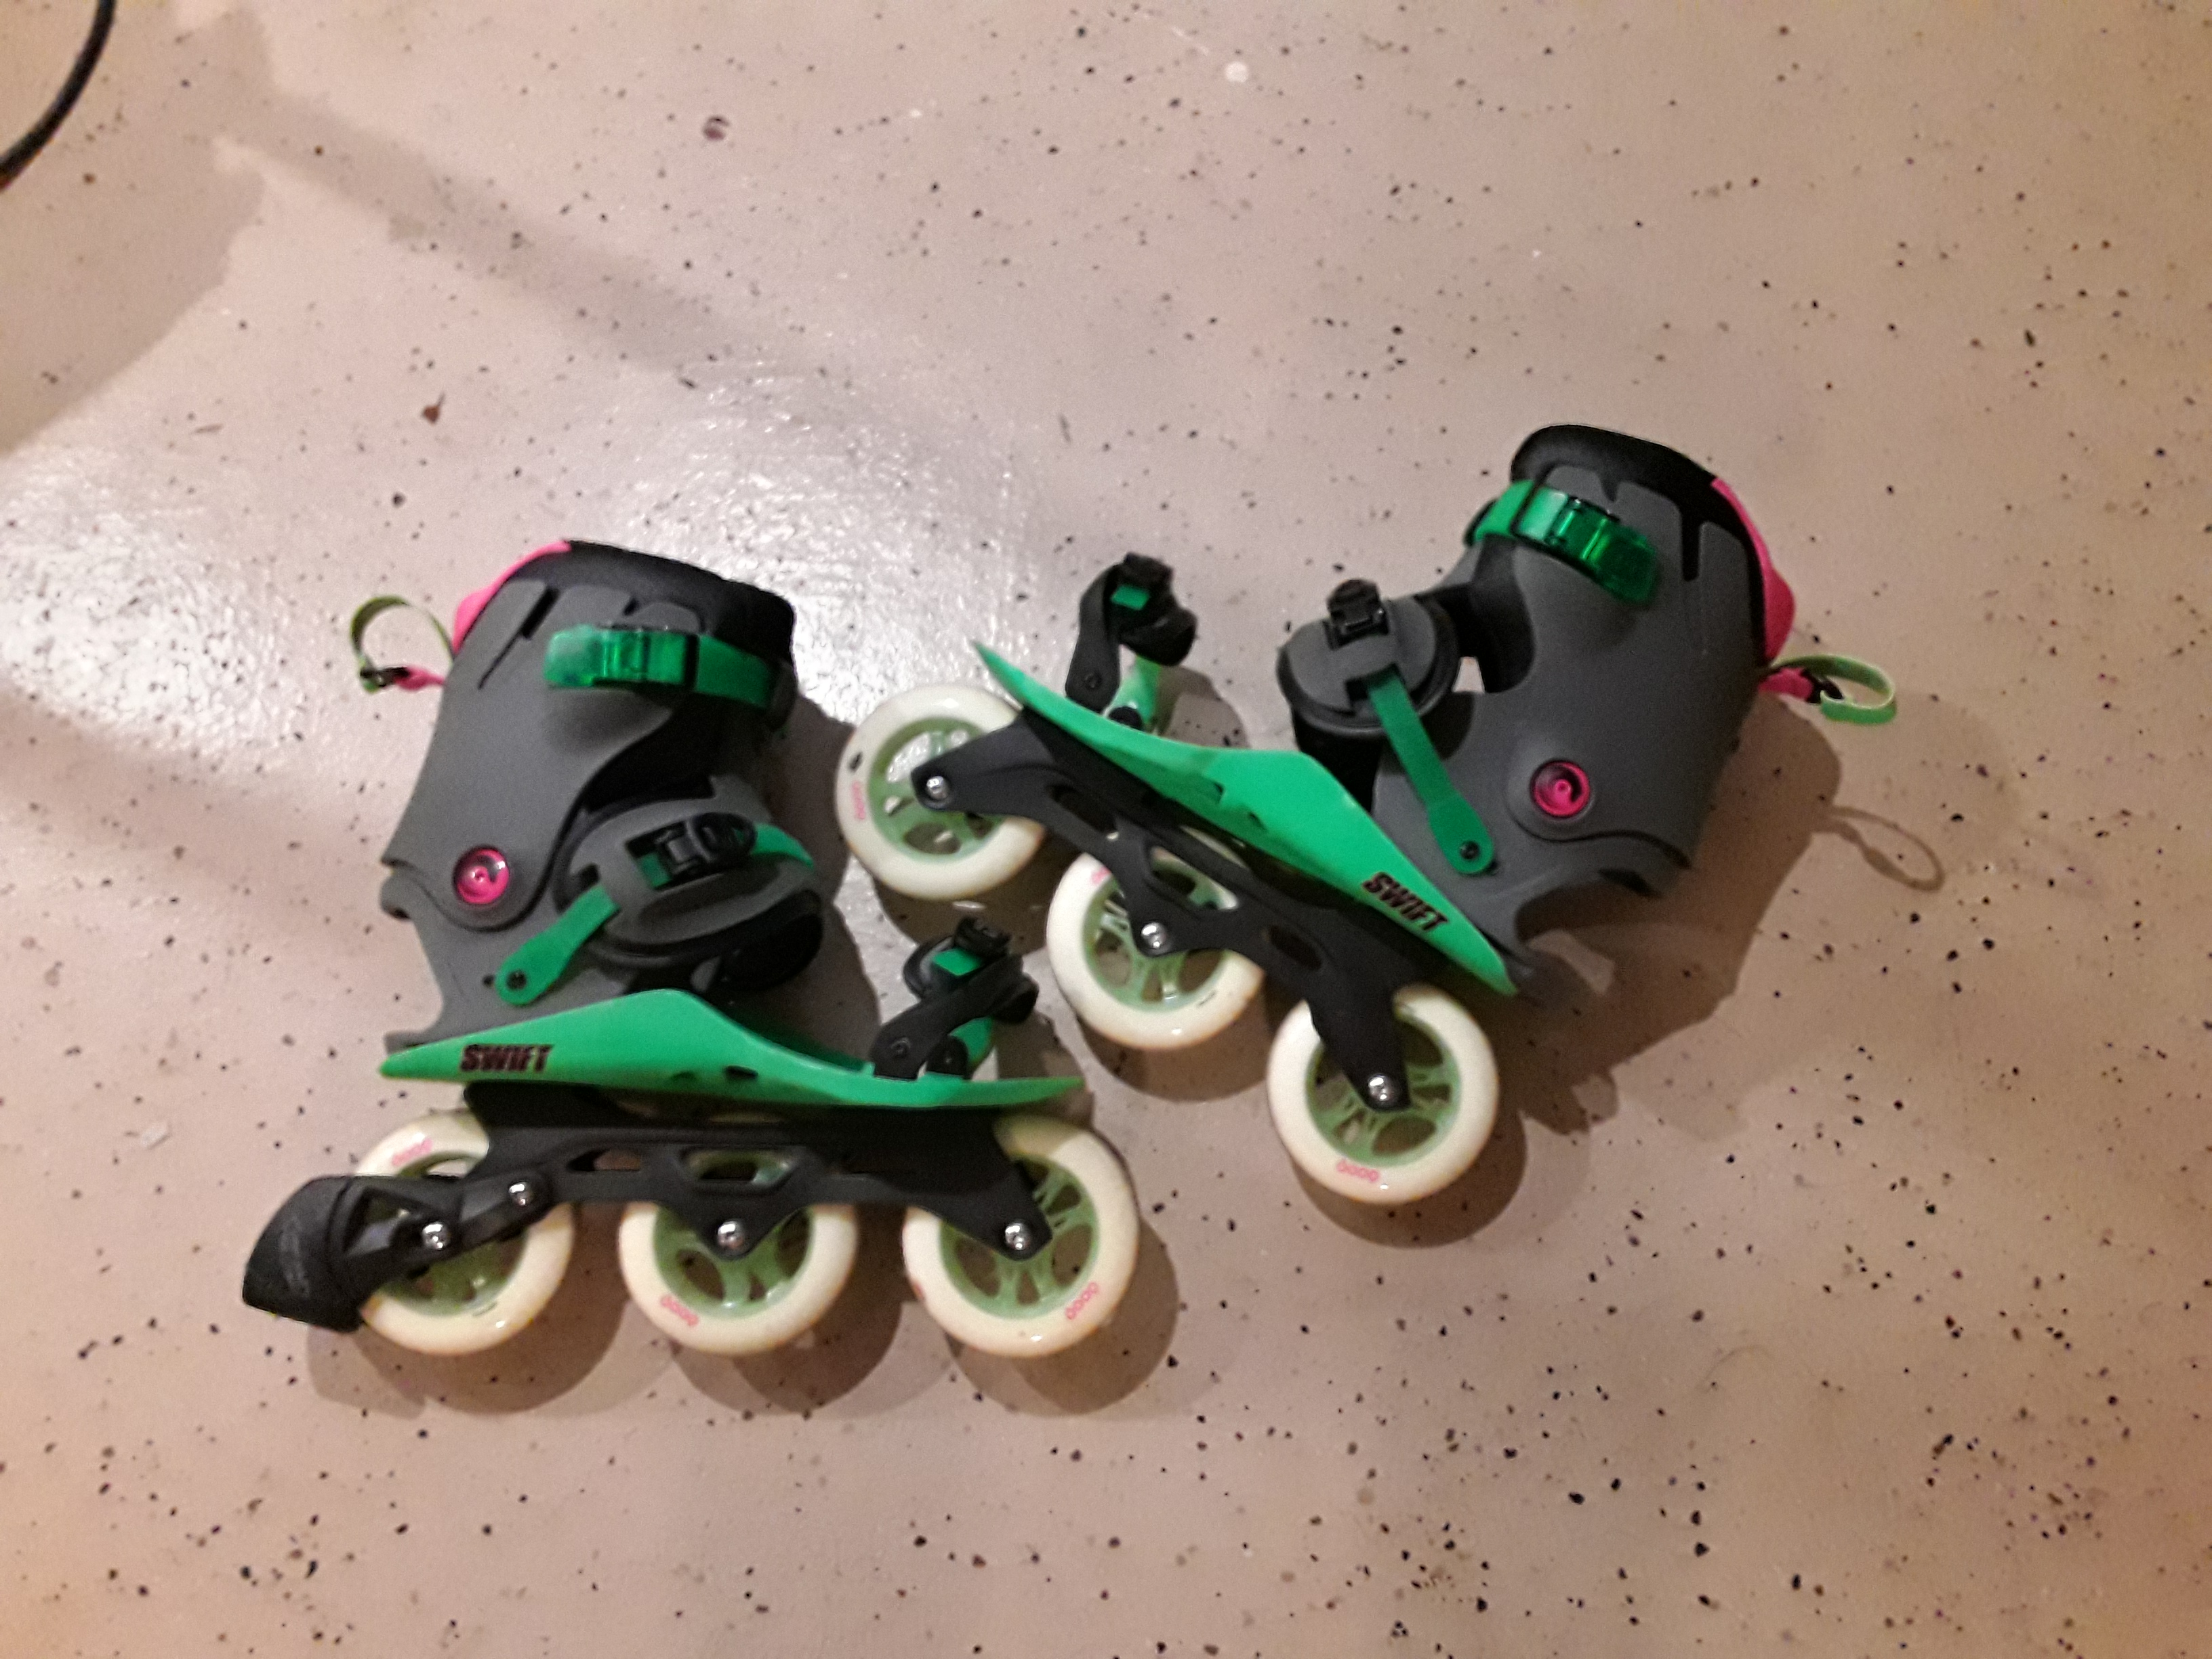 Excellent Adjustable In-Line Skates for Commuting/Fitness